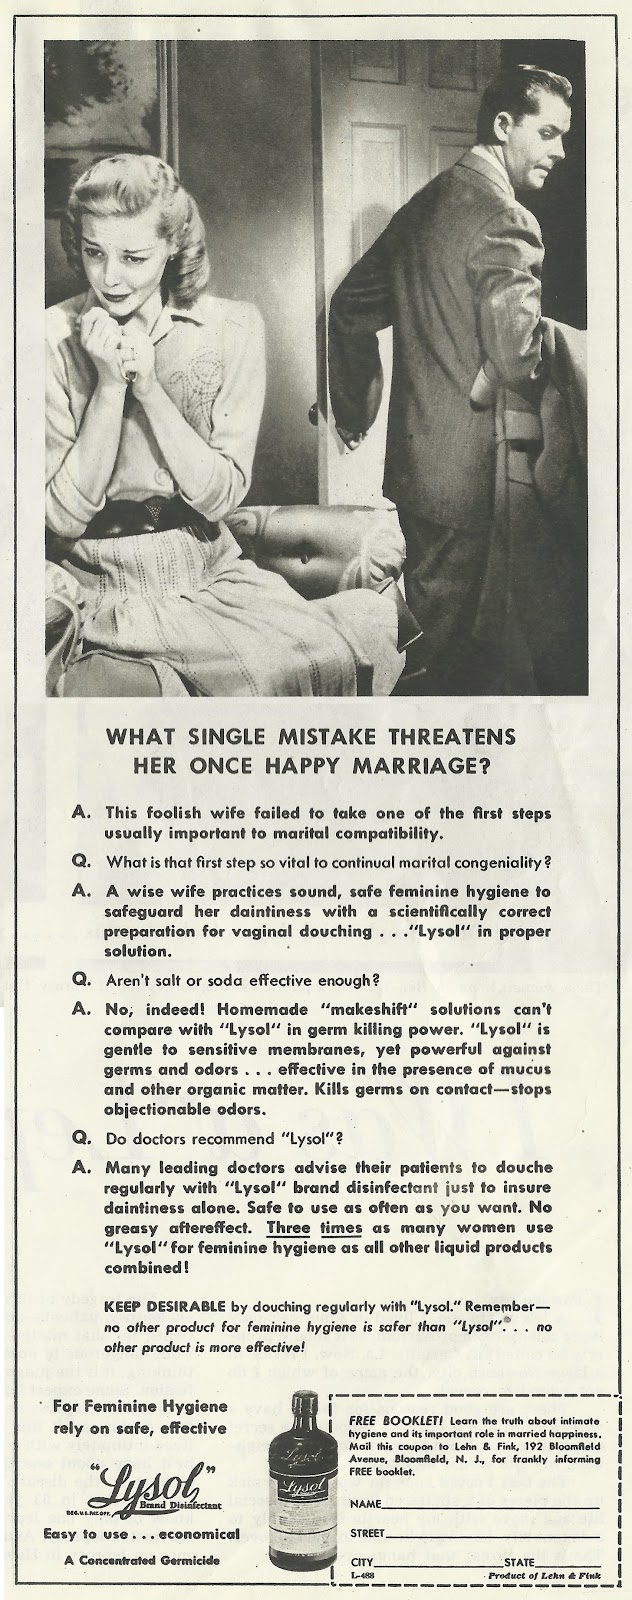 lysol douching method for women in Lysol douche ads urging women to douche with lysol were a cornerstone of feminine hygiene in the 1920s-1960s, but also a coded contraception technique.